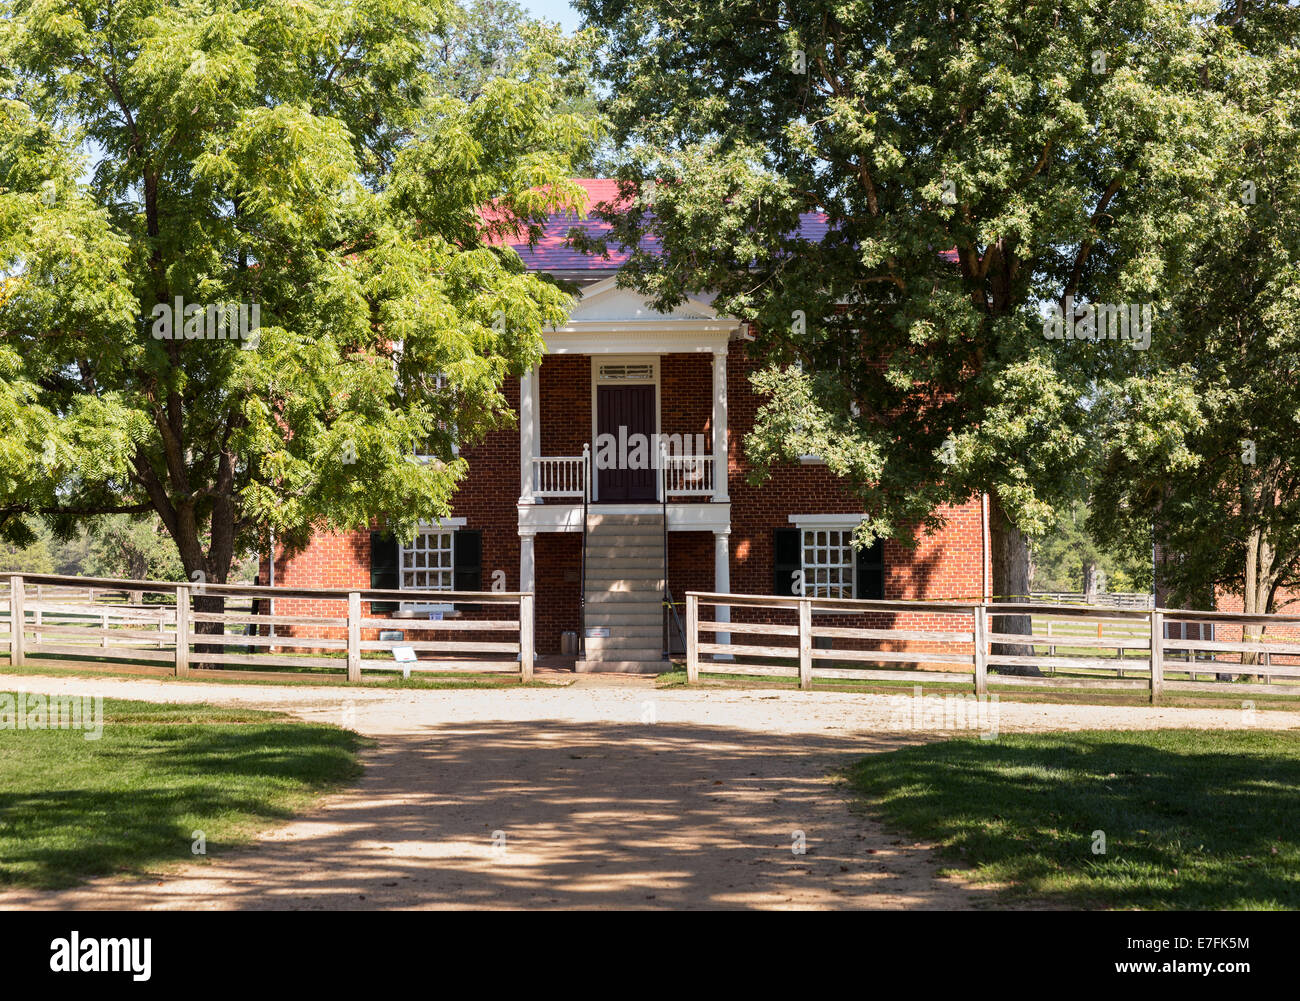 County Court House at Appomattox site of the surrender of Southern Army under General Robert E Lee to Ulysses S - Stock Image